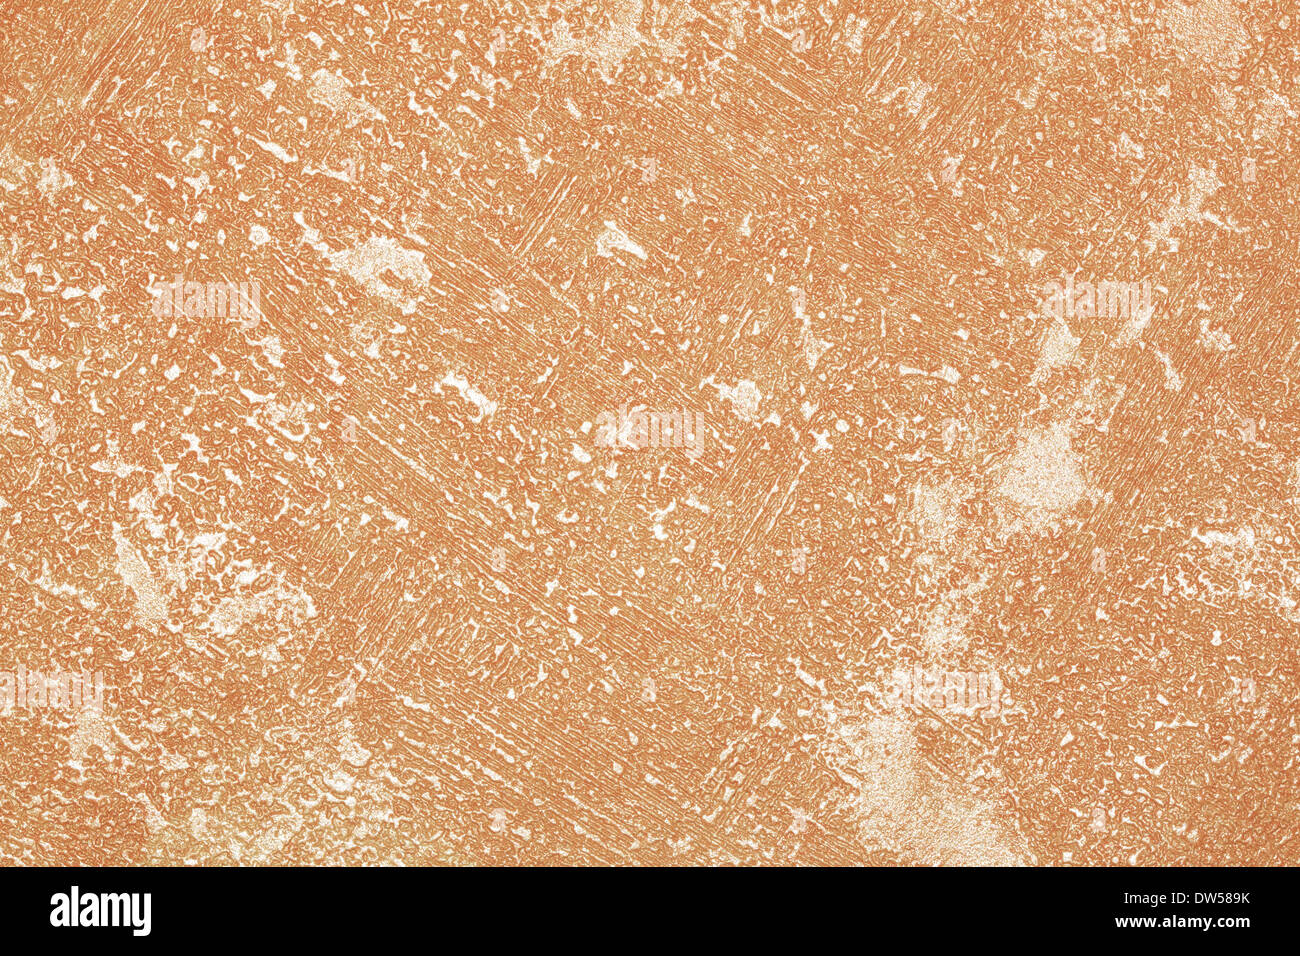 Wallpaper background color background vintage wall decor Stock Photo ...